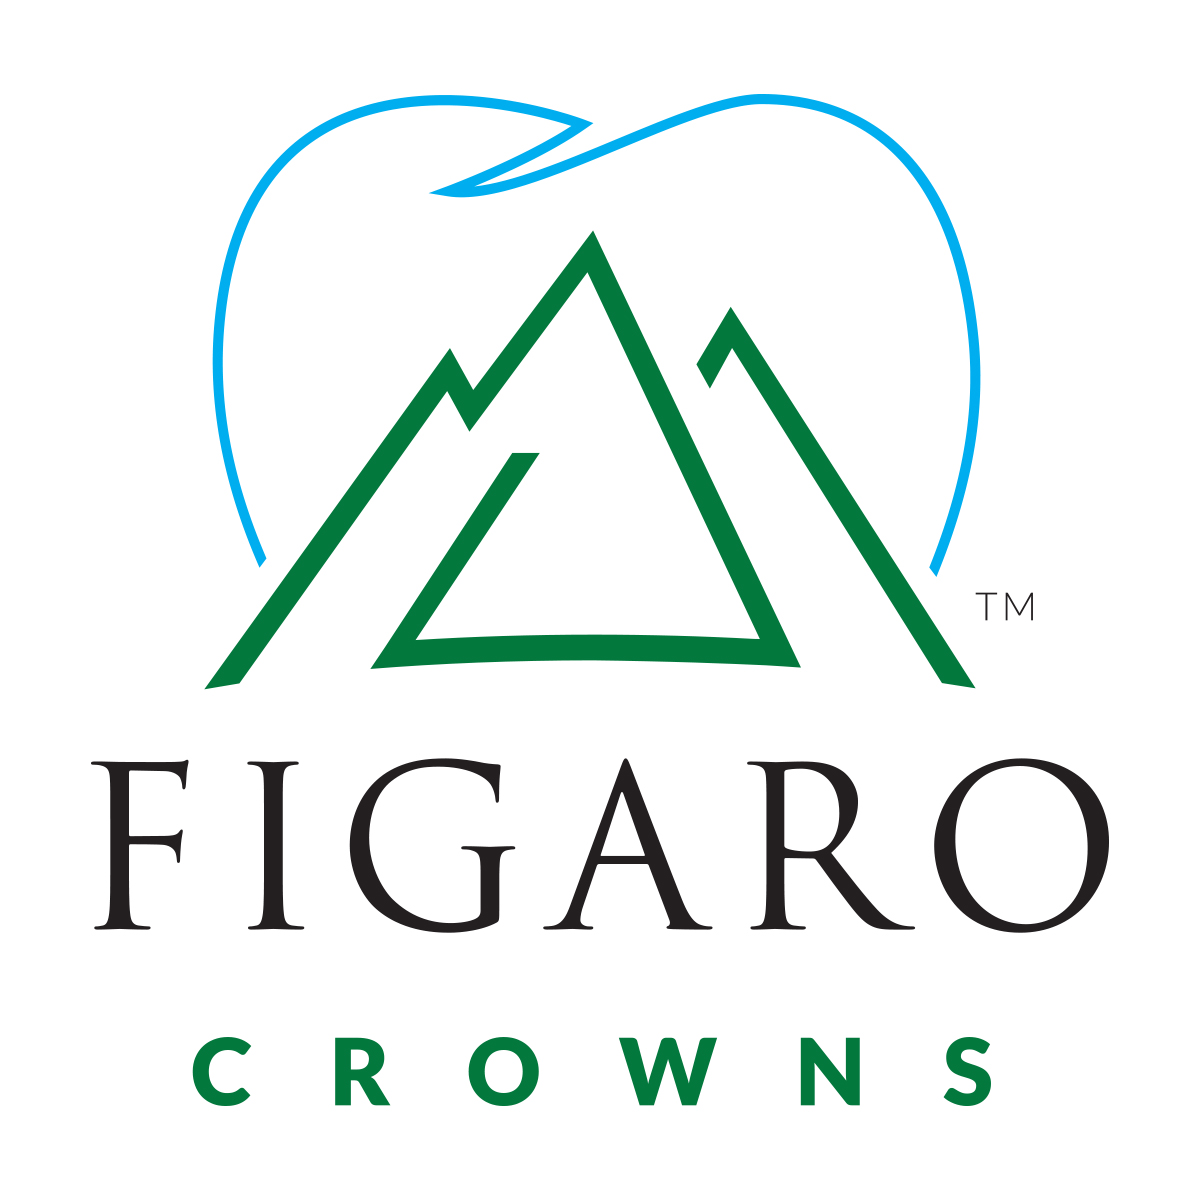 Figaro_Crowns_Logos-COLOR-TM